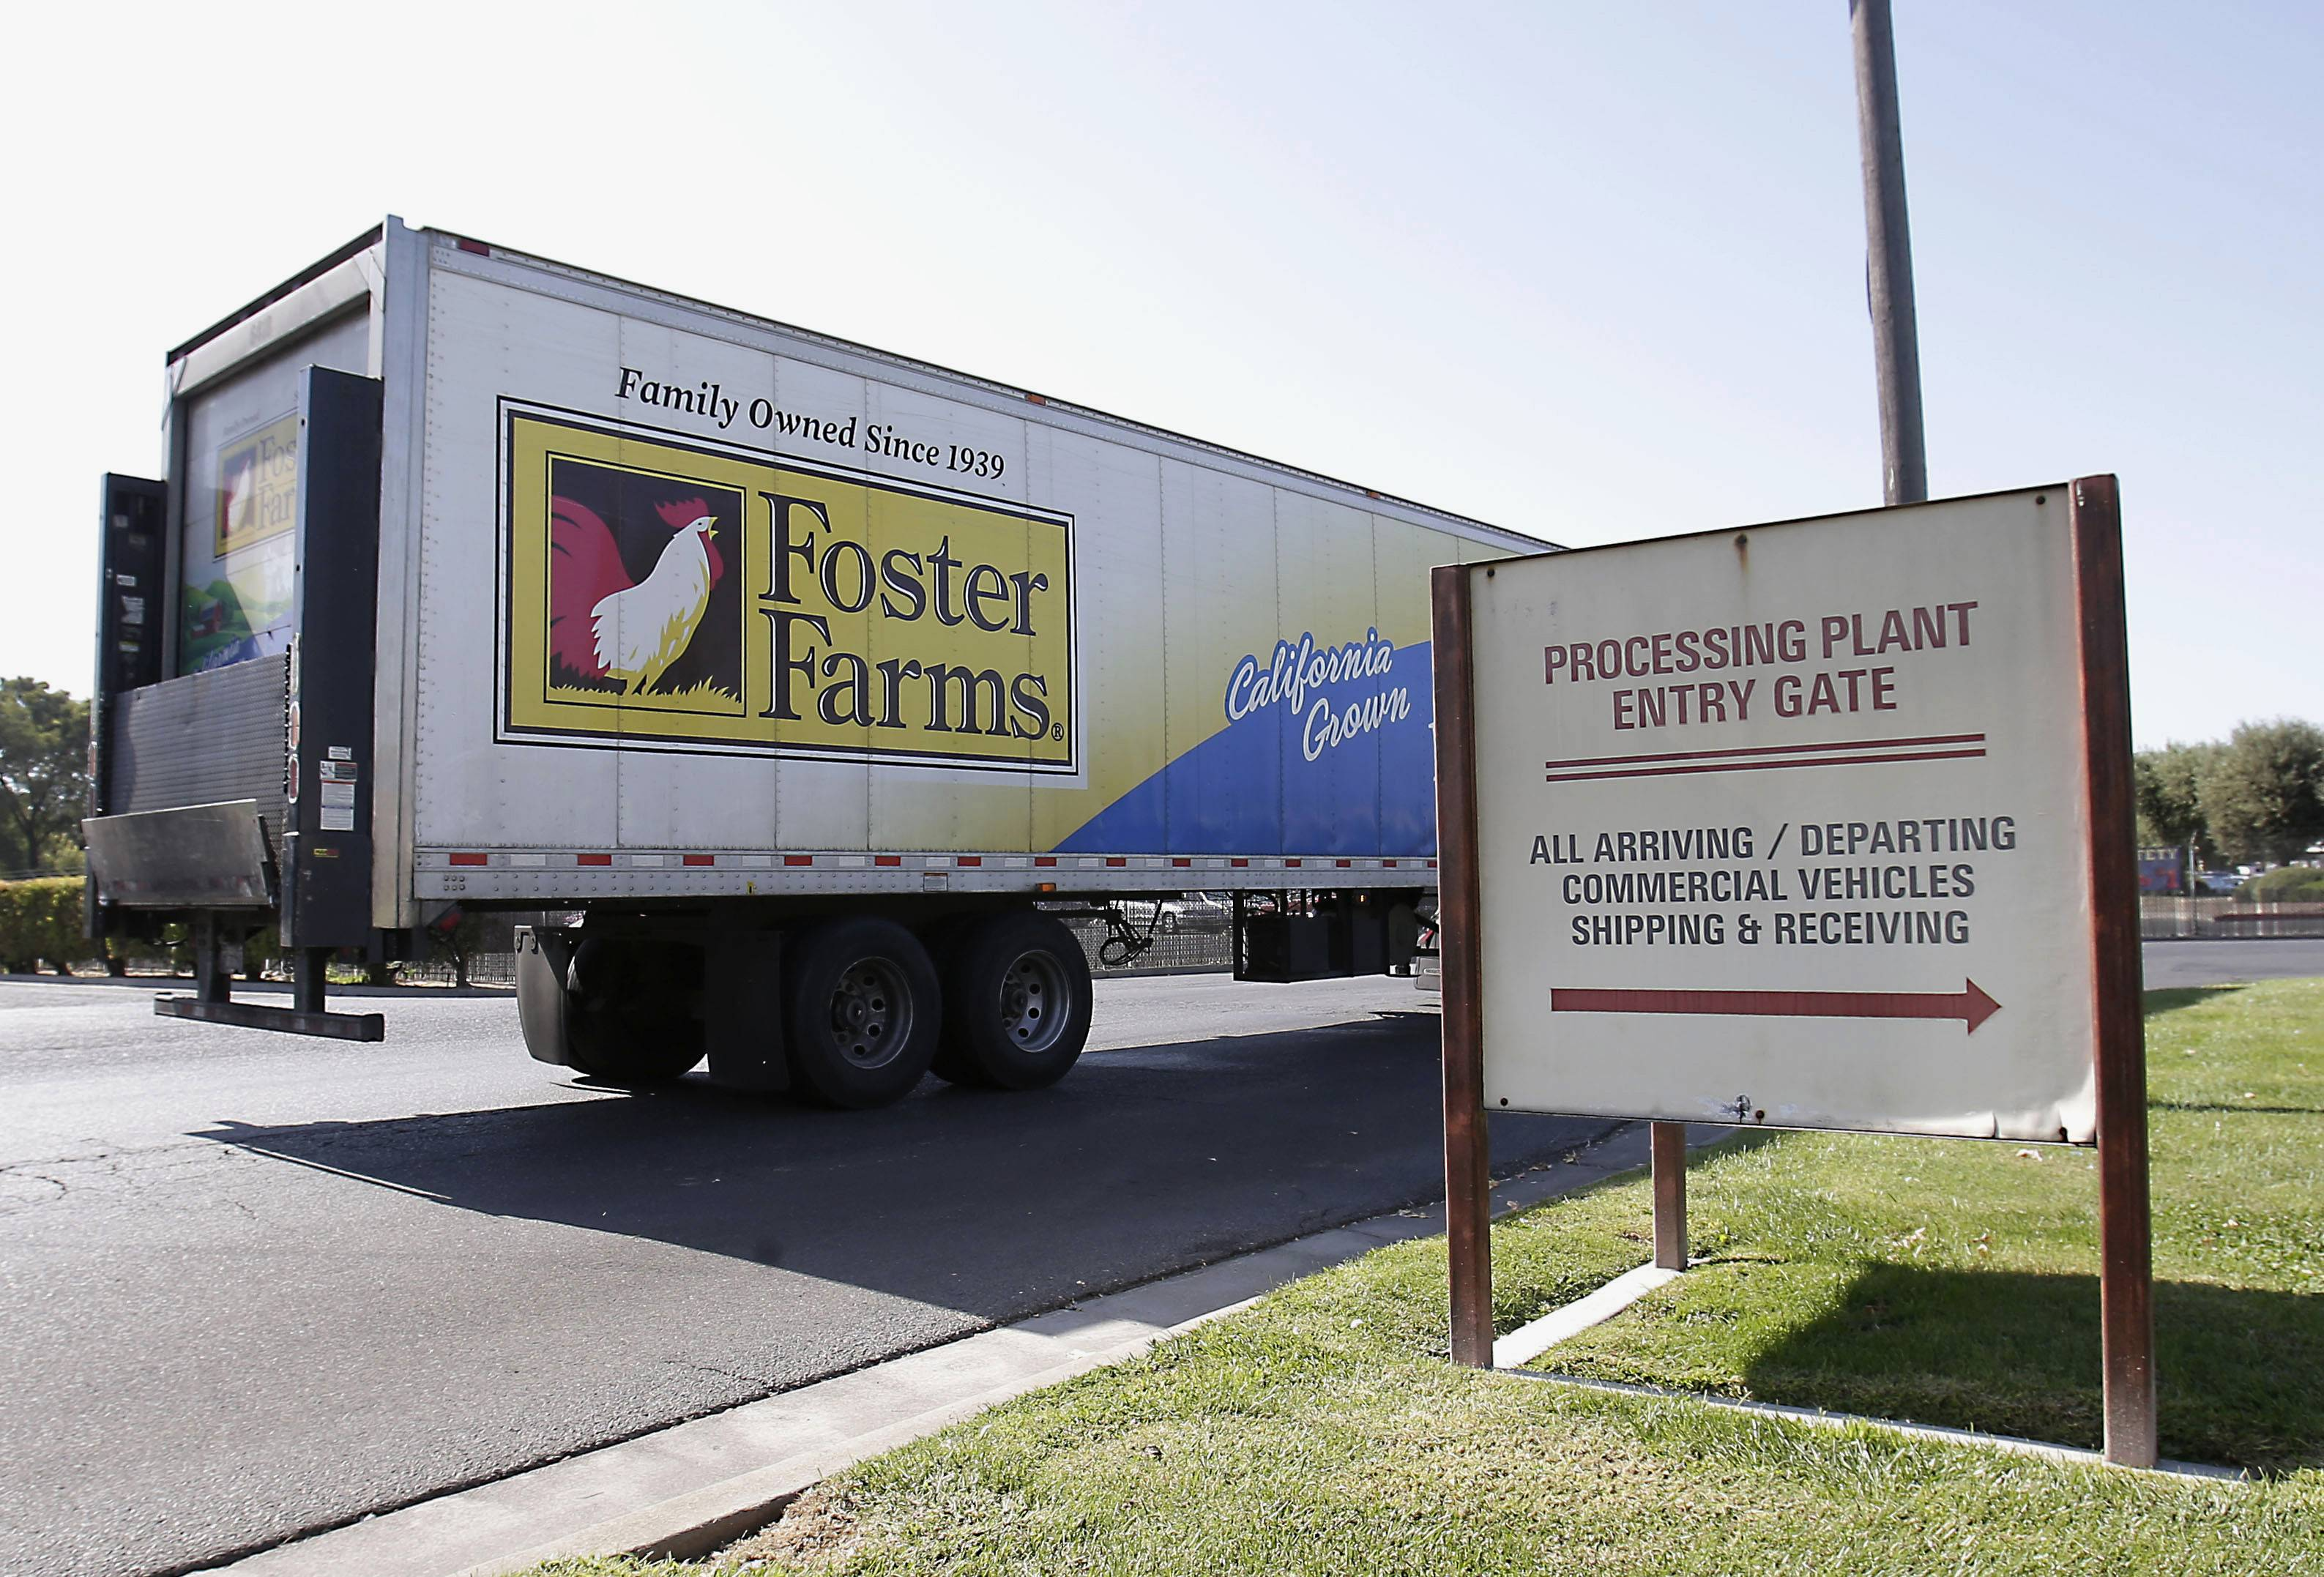 Foster Farms processing plant in Livingston, Calif. An outbreak of antibiotic-resistant salmonella linked to a California chicken company is ongoing after more than a year, with 50 new illnesses in the last two months and 574 sickened since March 2013.